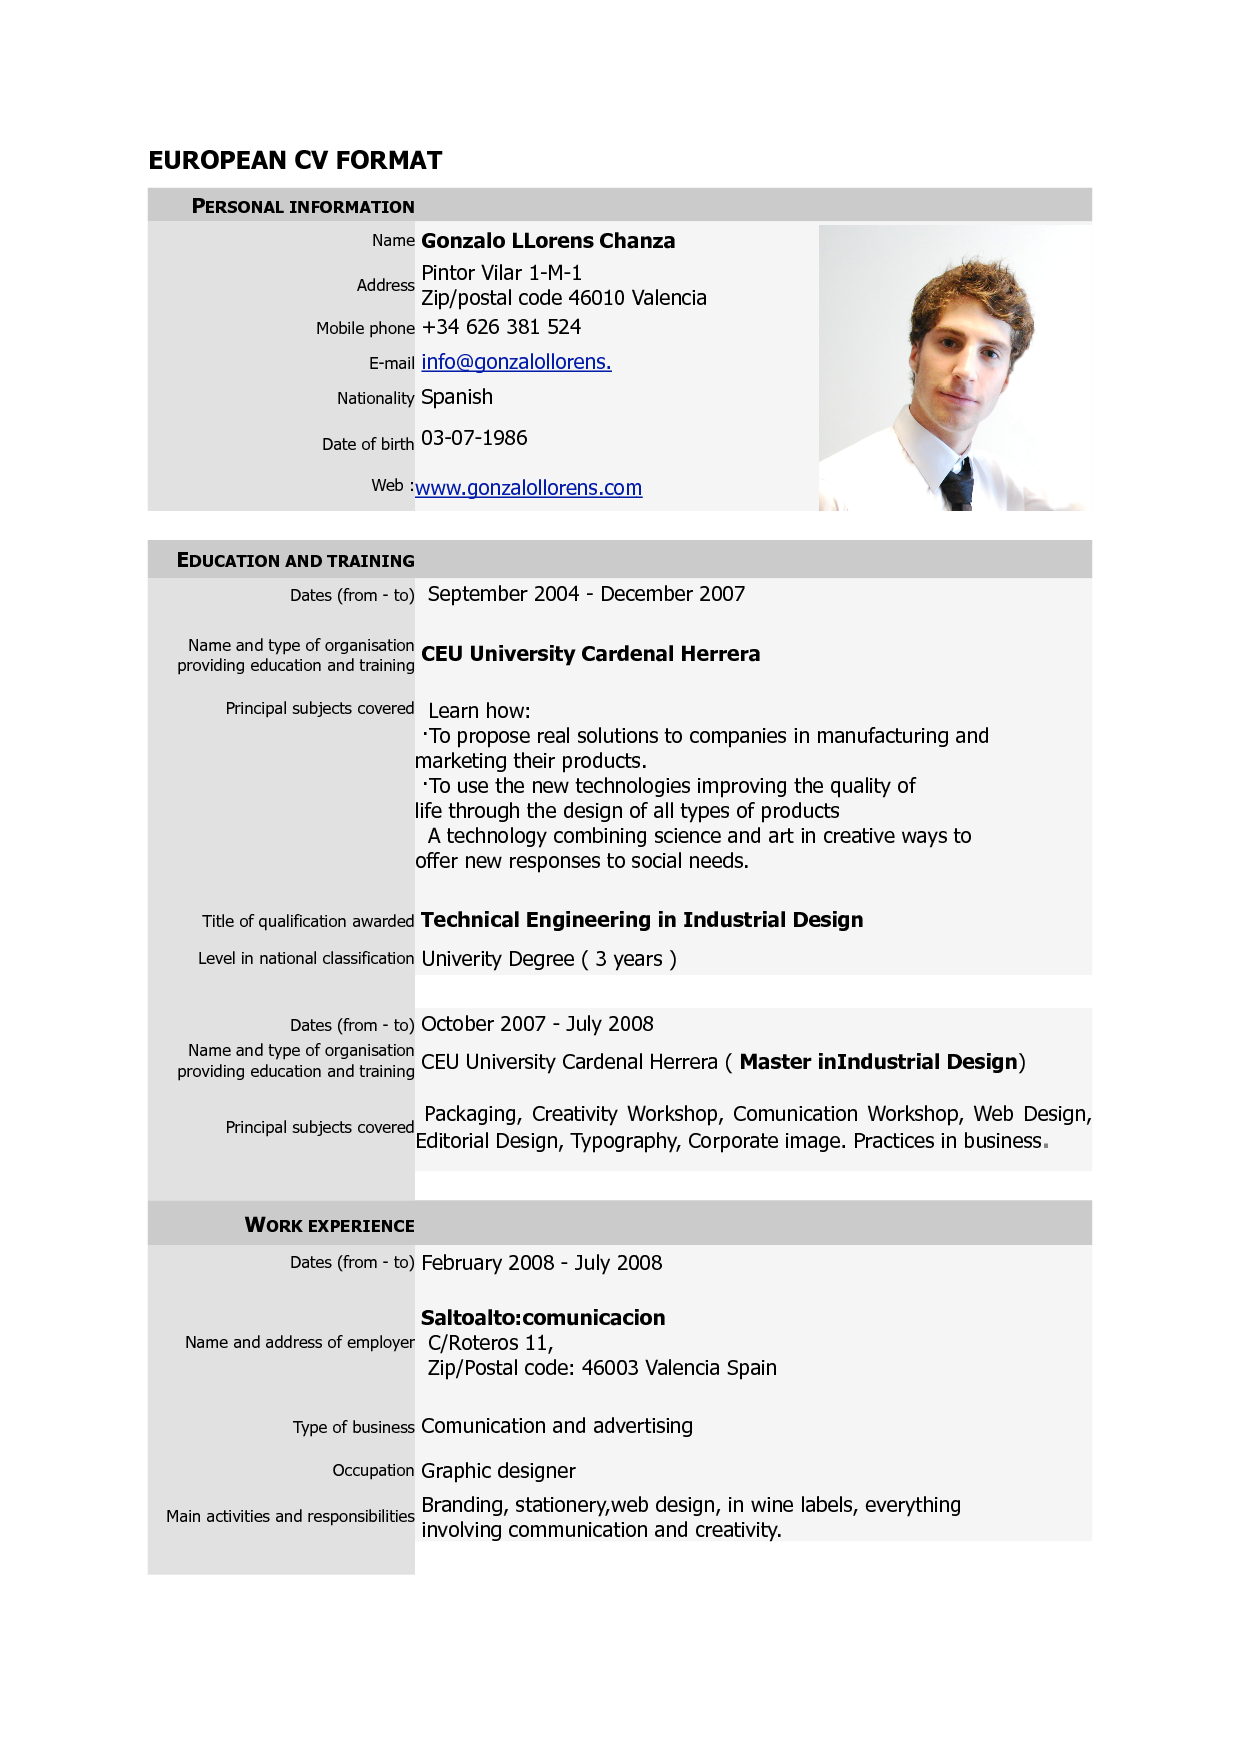 Resume Template Download Free Download Cv Europass Pdf Europass Home European Cv Format Pdf